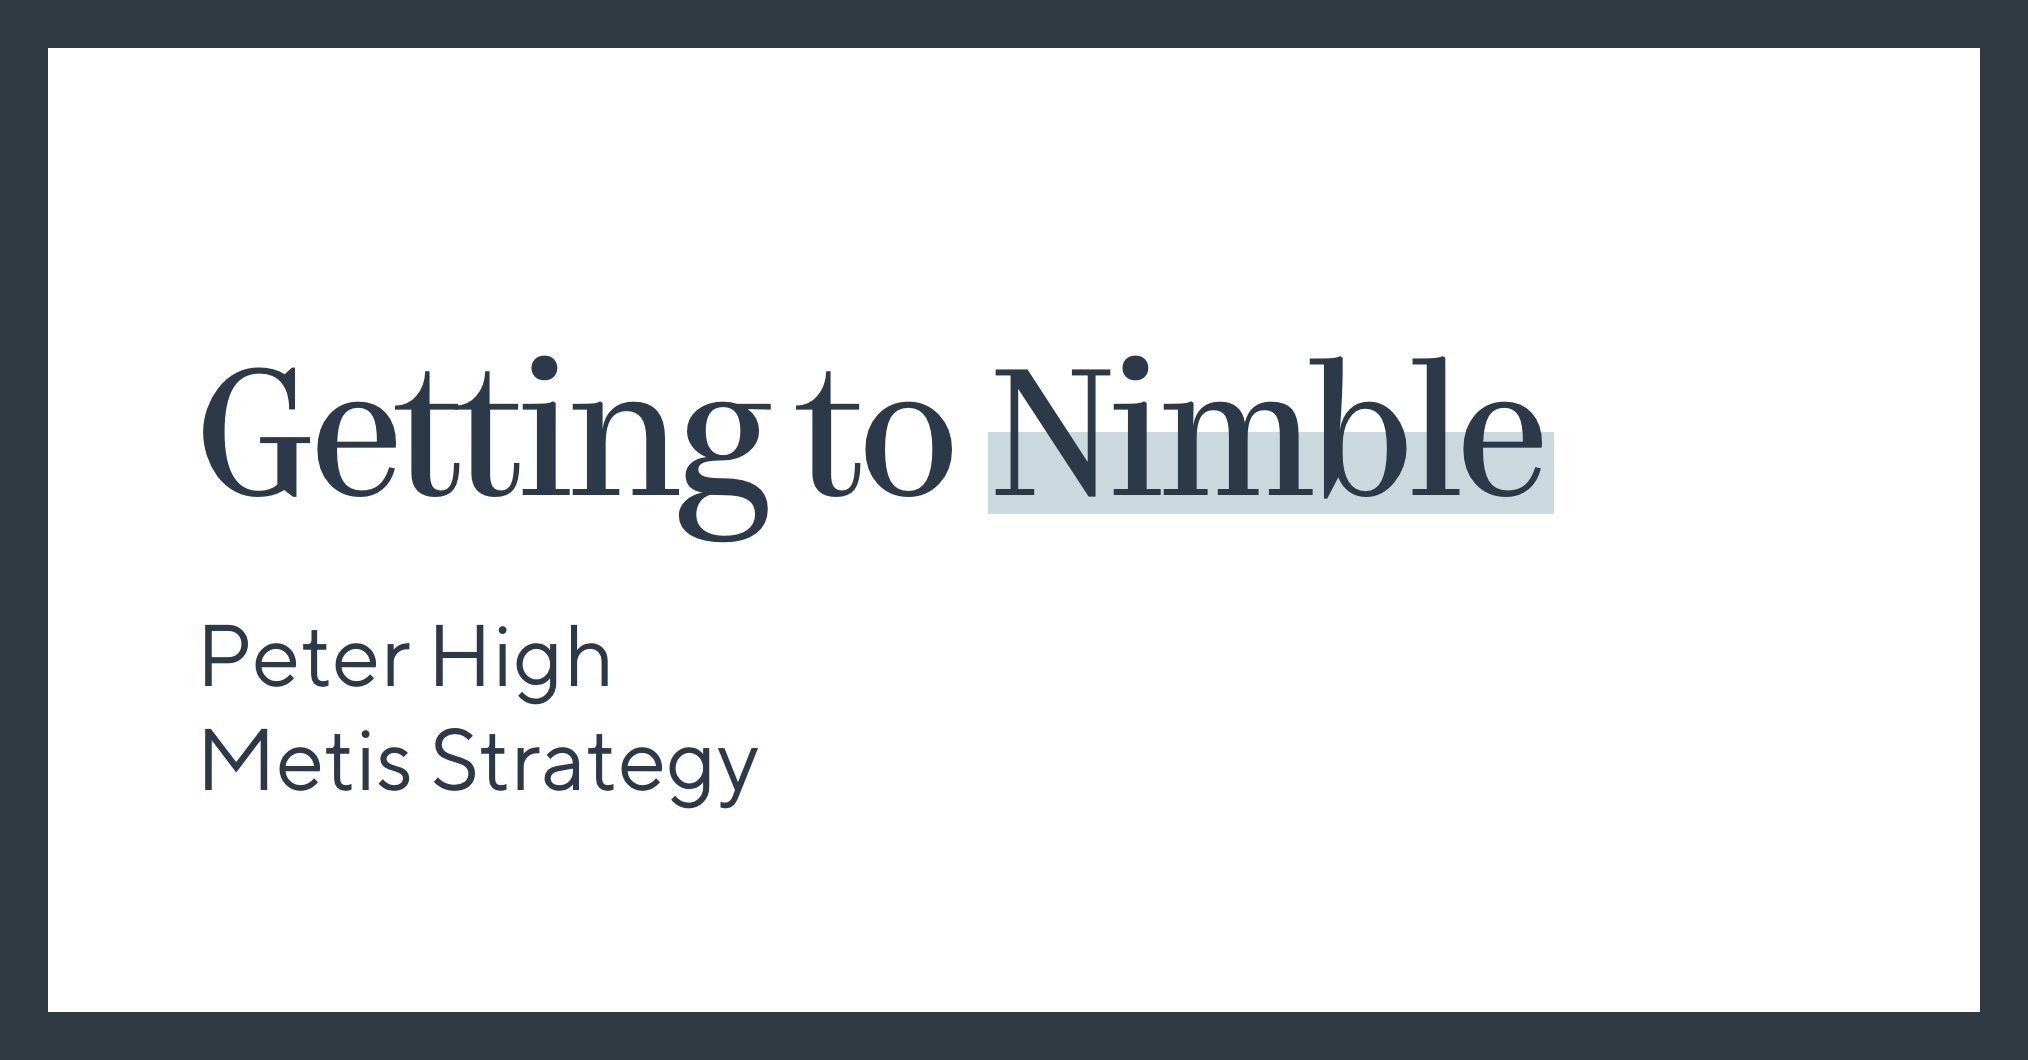 Getting to Nimble